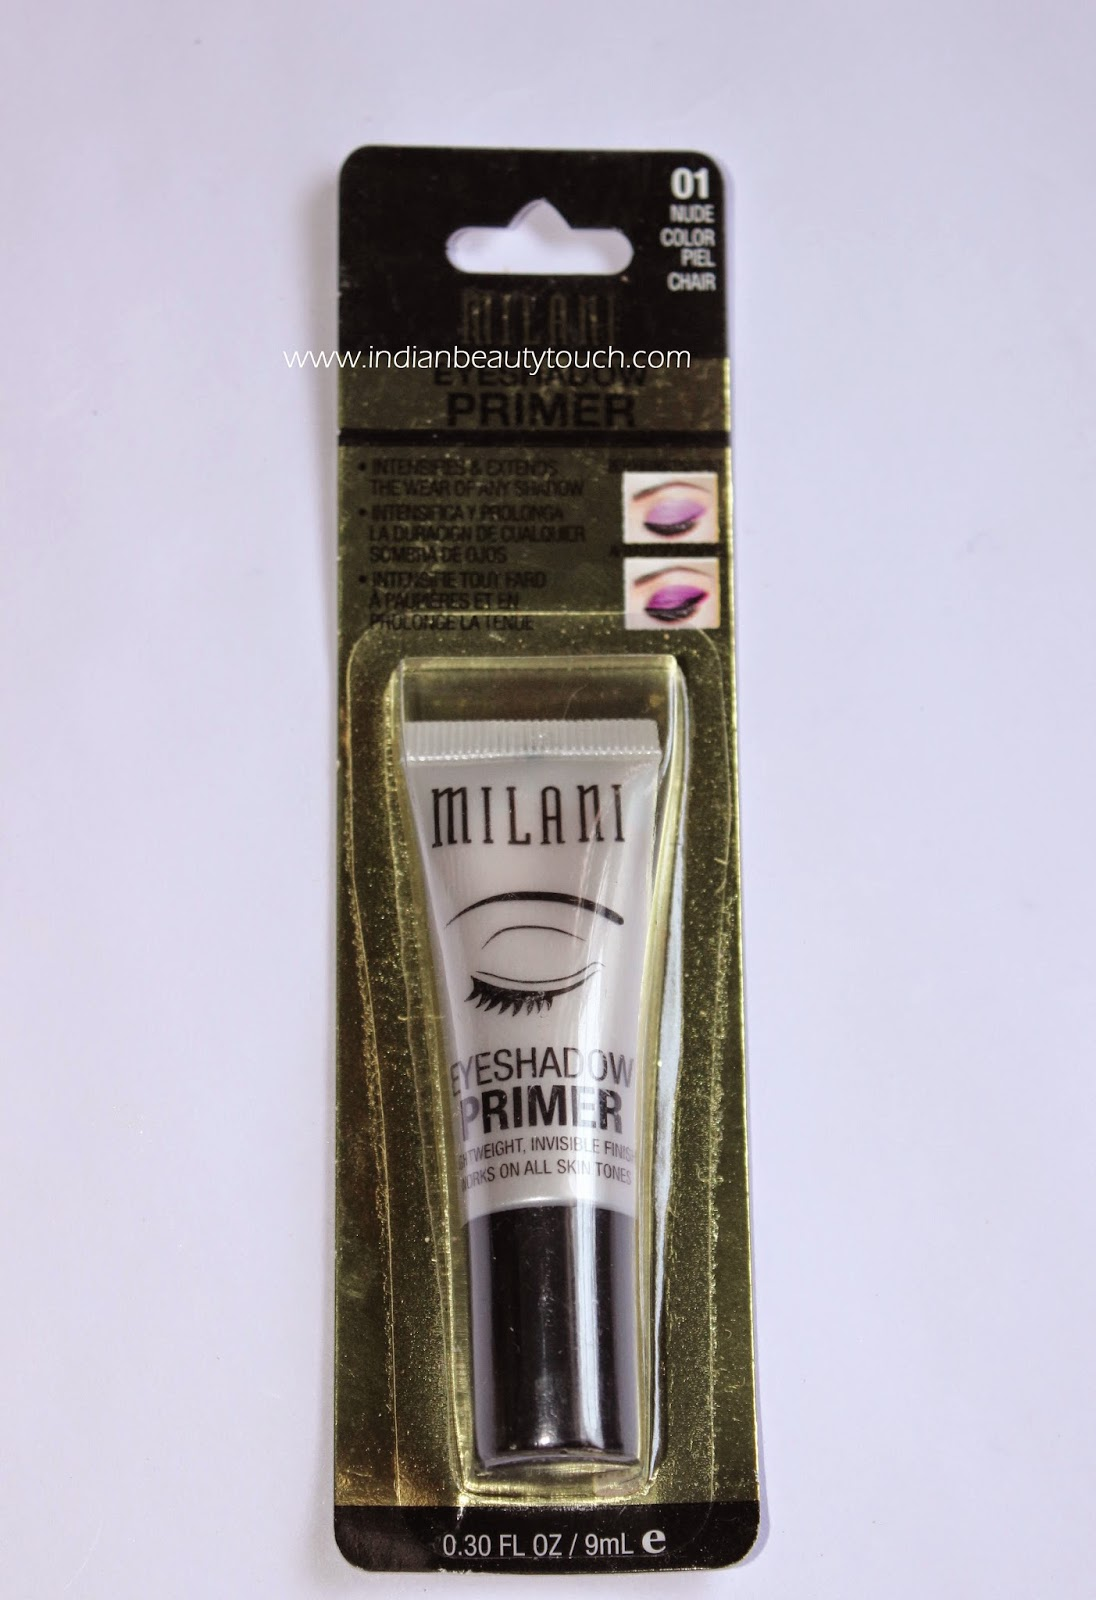 Milani Eye Shadow Primer Review, Milani products, Milani cosmetics , eyeshadow primer review , milani cosmetics india, affordable eyeshadow primer in india , too face shadow insurance dupe , Milani Eye Shadow Primer Review  and Swatches, Milani Eye Shadow Primer Review in India